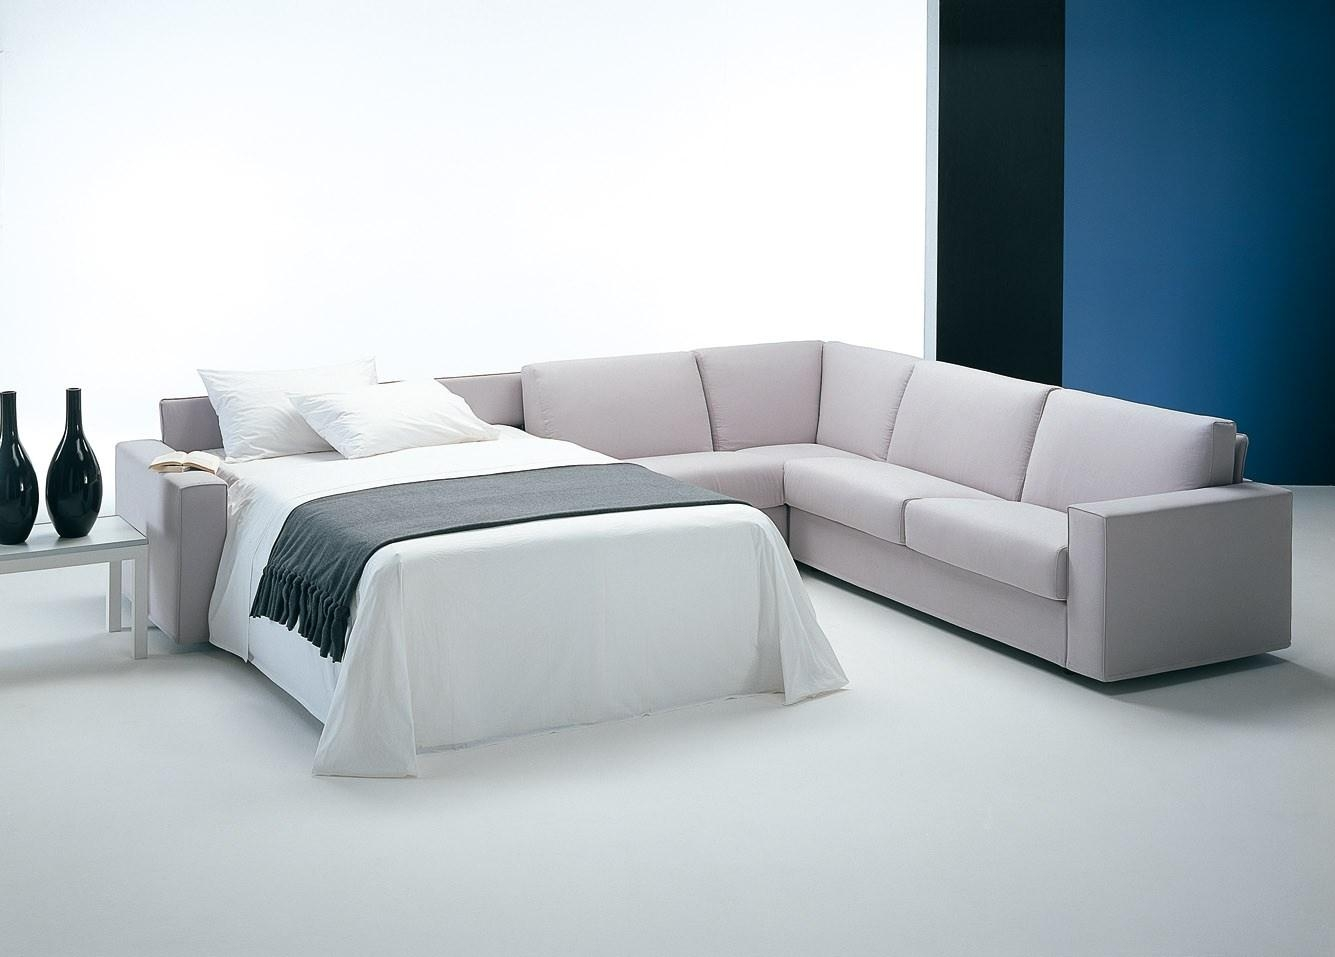 Sectional Sofa Bed Joaobodema For Giant Sofa Beds (View 15 of 20)